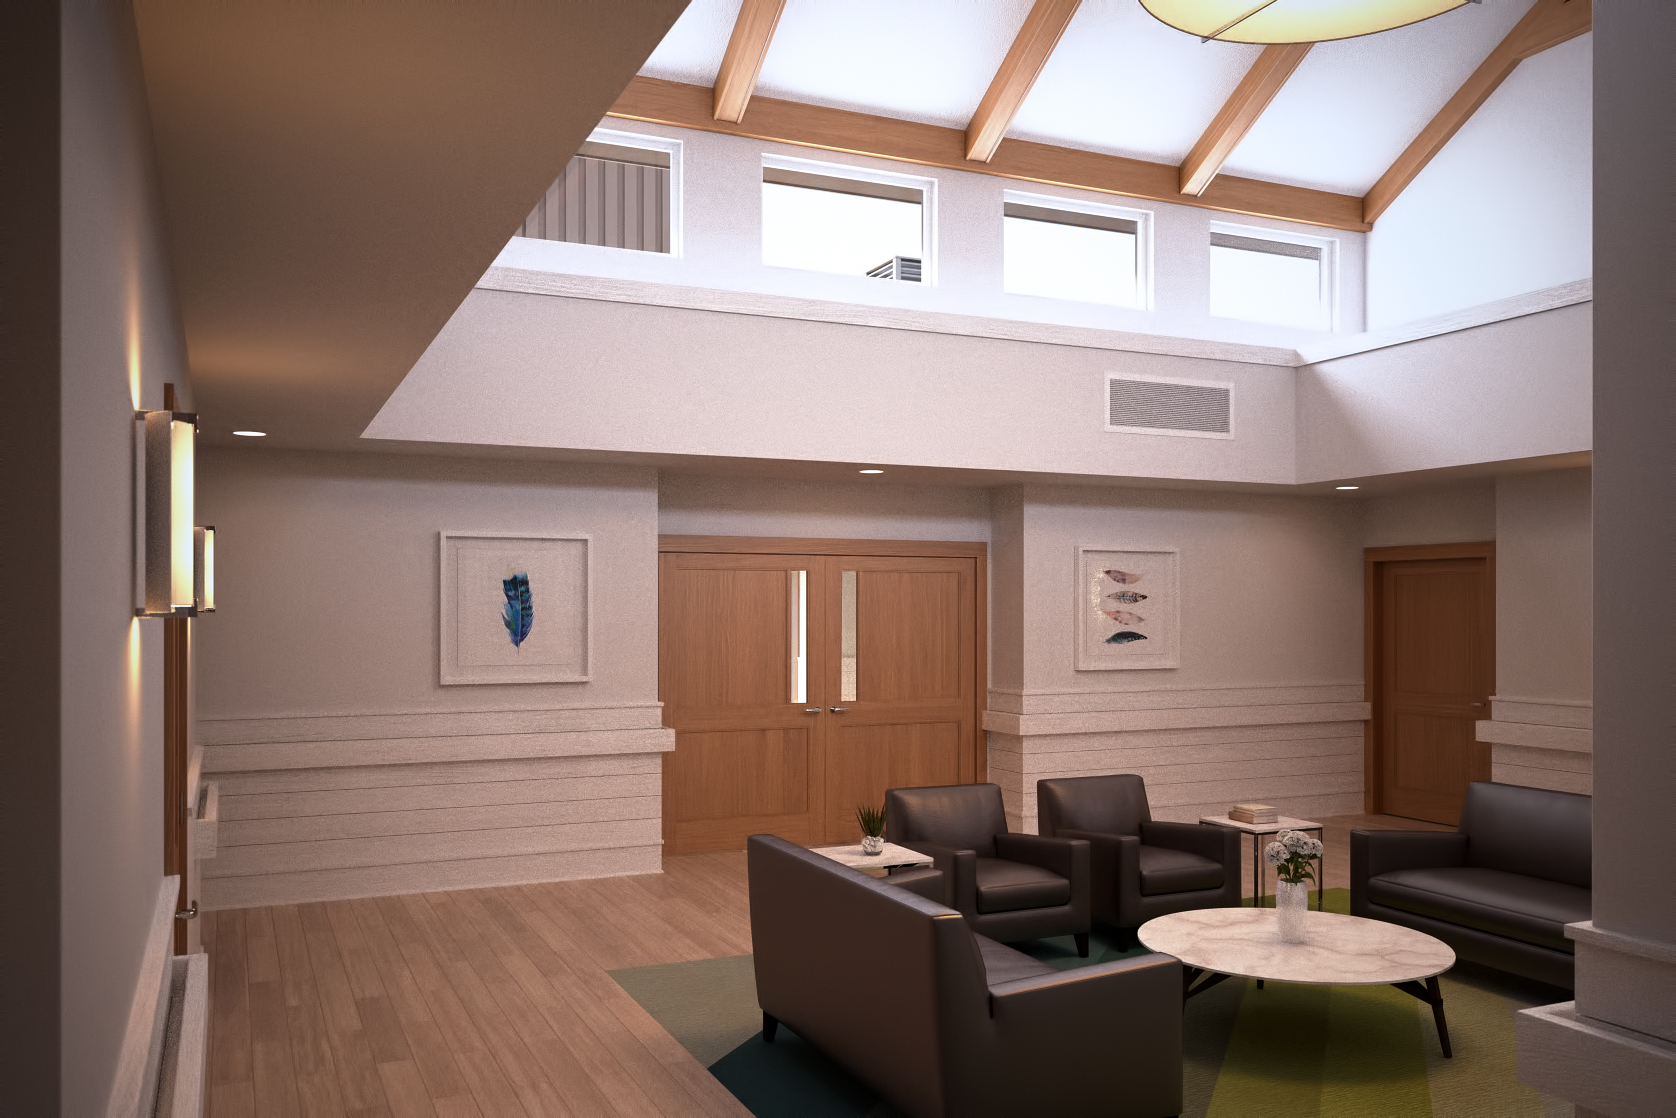 The living areas are placed inside the main areas of egress.  This was an intentional decision to create a feeling of life happening in the midst of a hospice environment while also encouraging camardarie among families and friends.